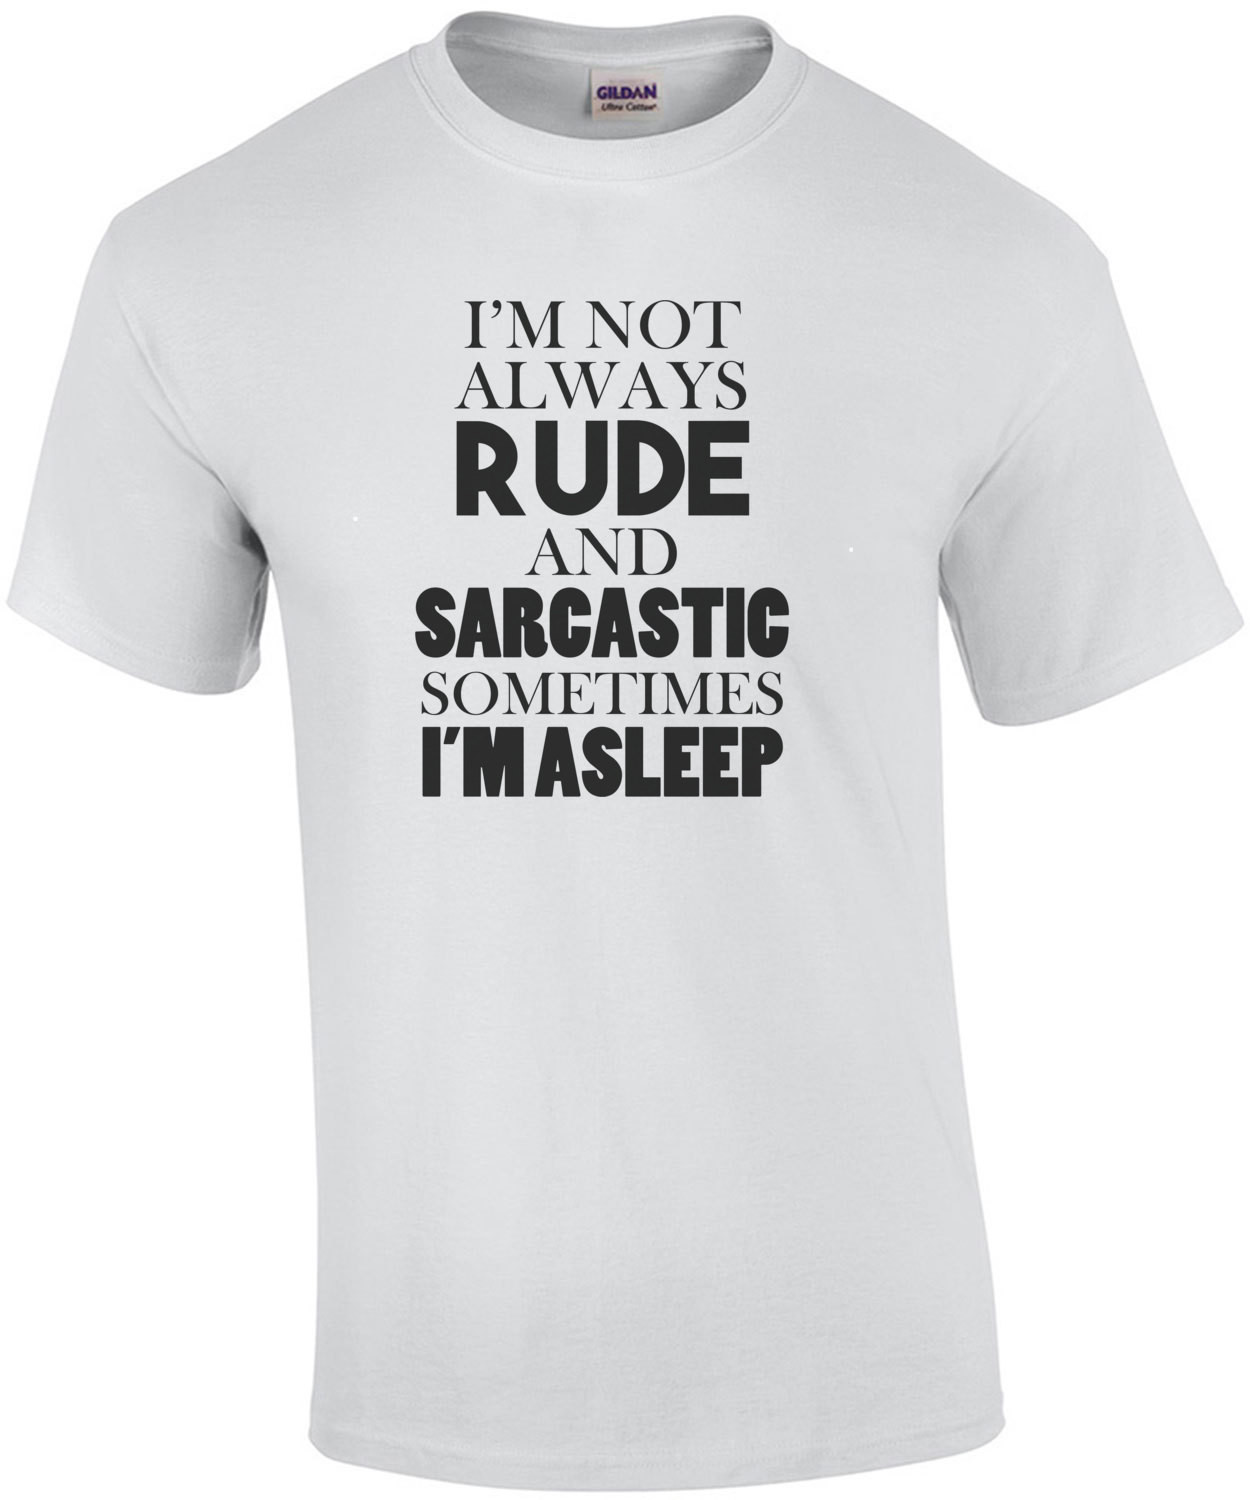 I'm not always rude and sarcastic sometimes I'm asleep t-shirt